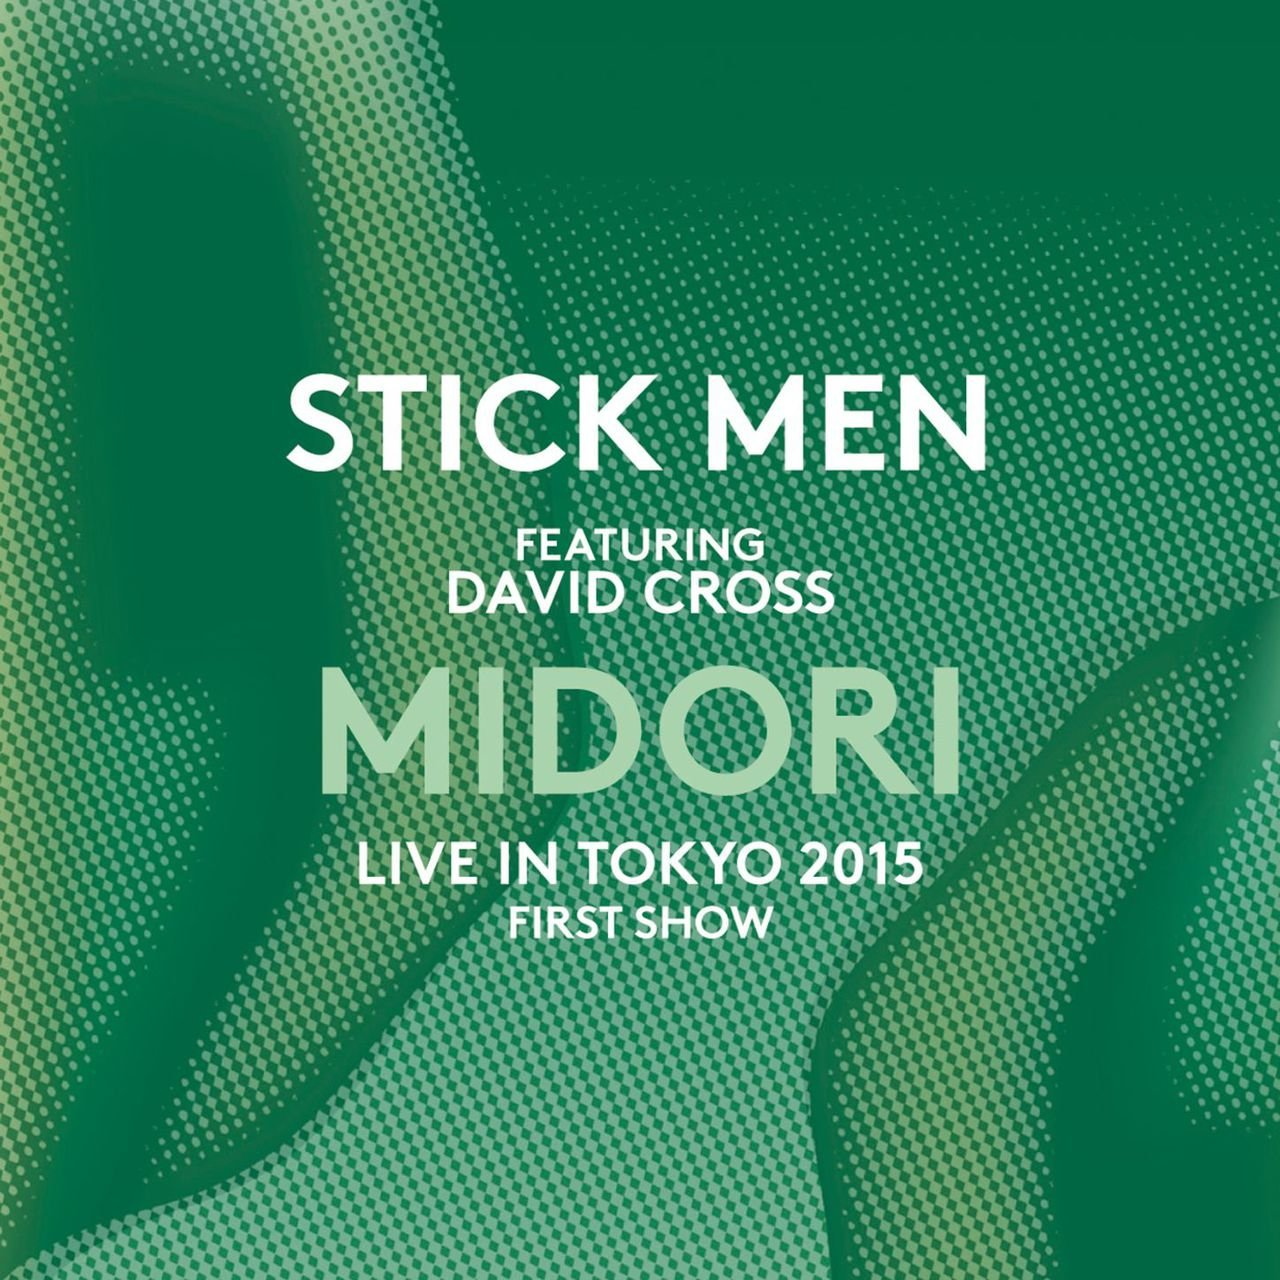 Midori - Live in Tokyo 2015, First Show